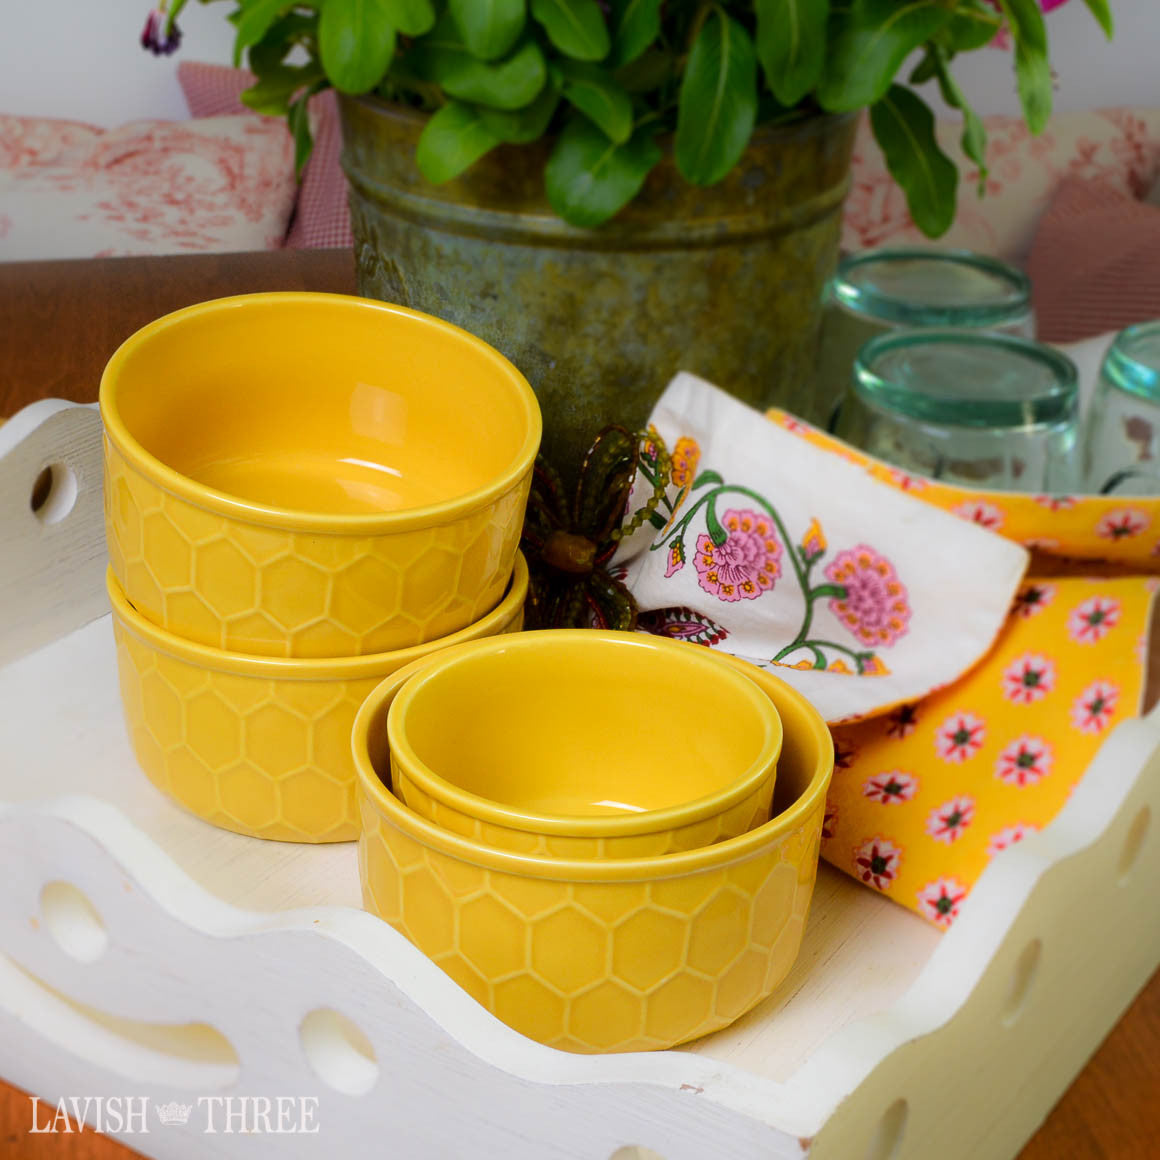 Embossed country farmhouse honey comb yellow cereal or dessert bowl set